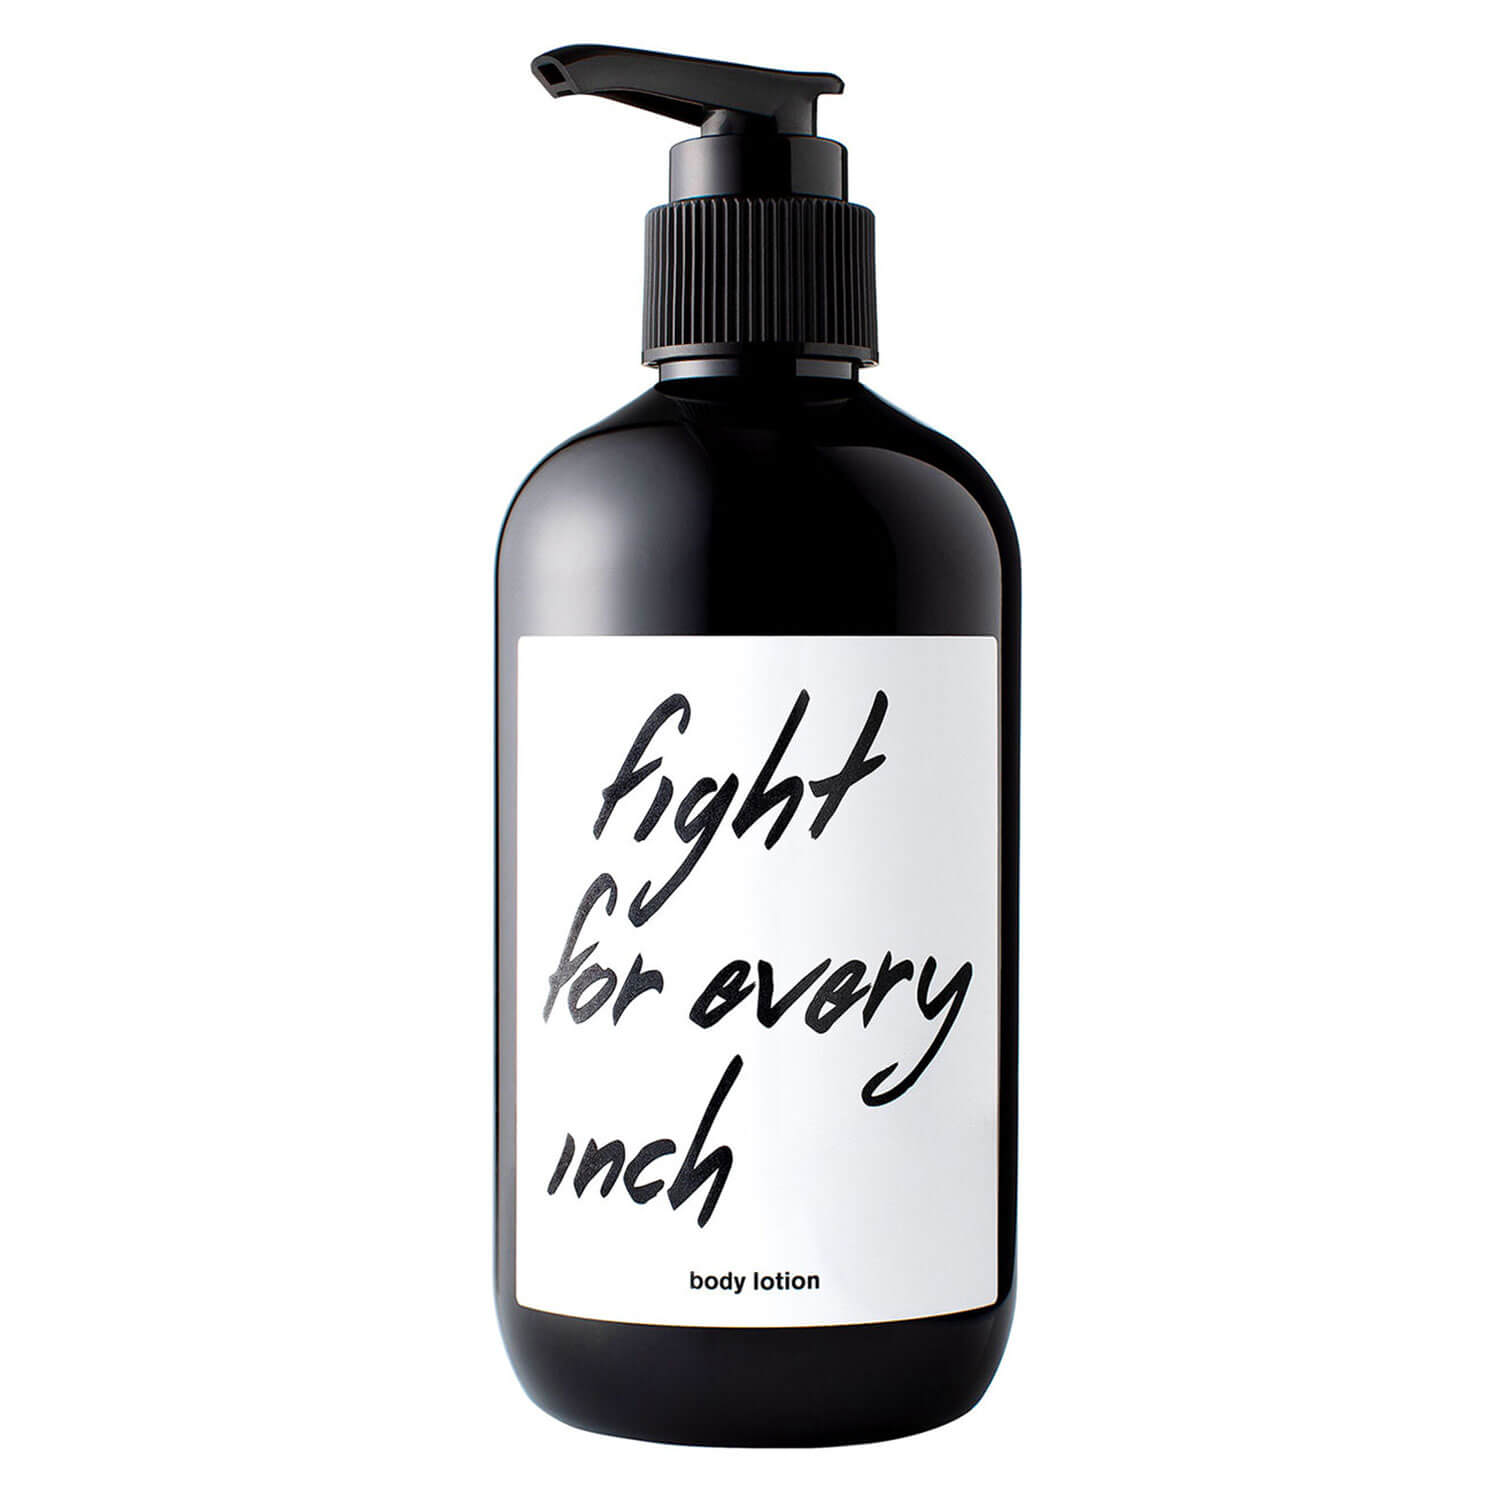 DOERS of London - Body Lotion